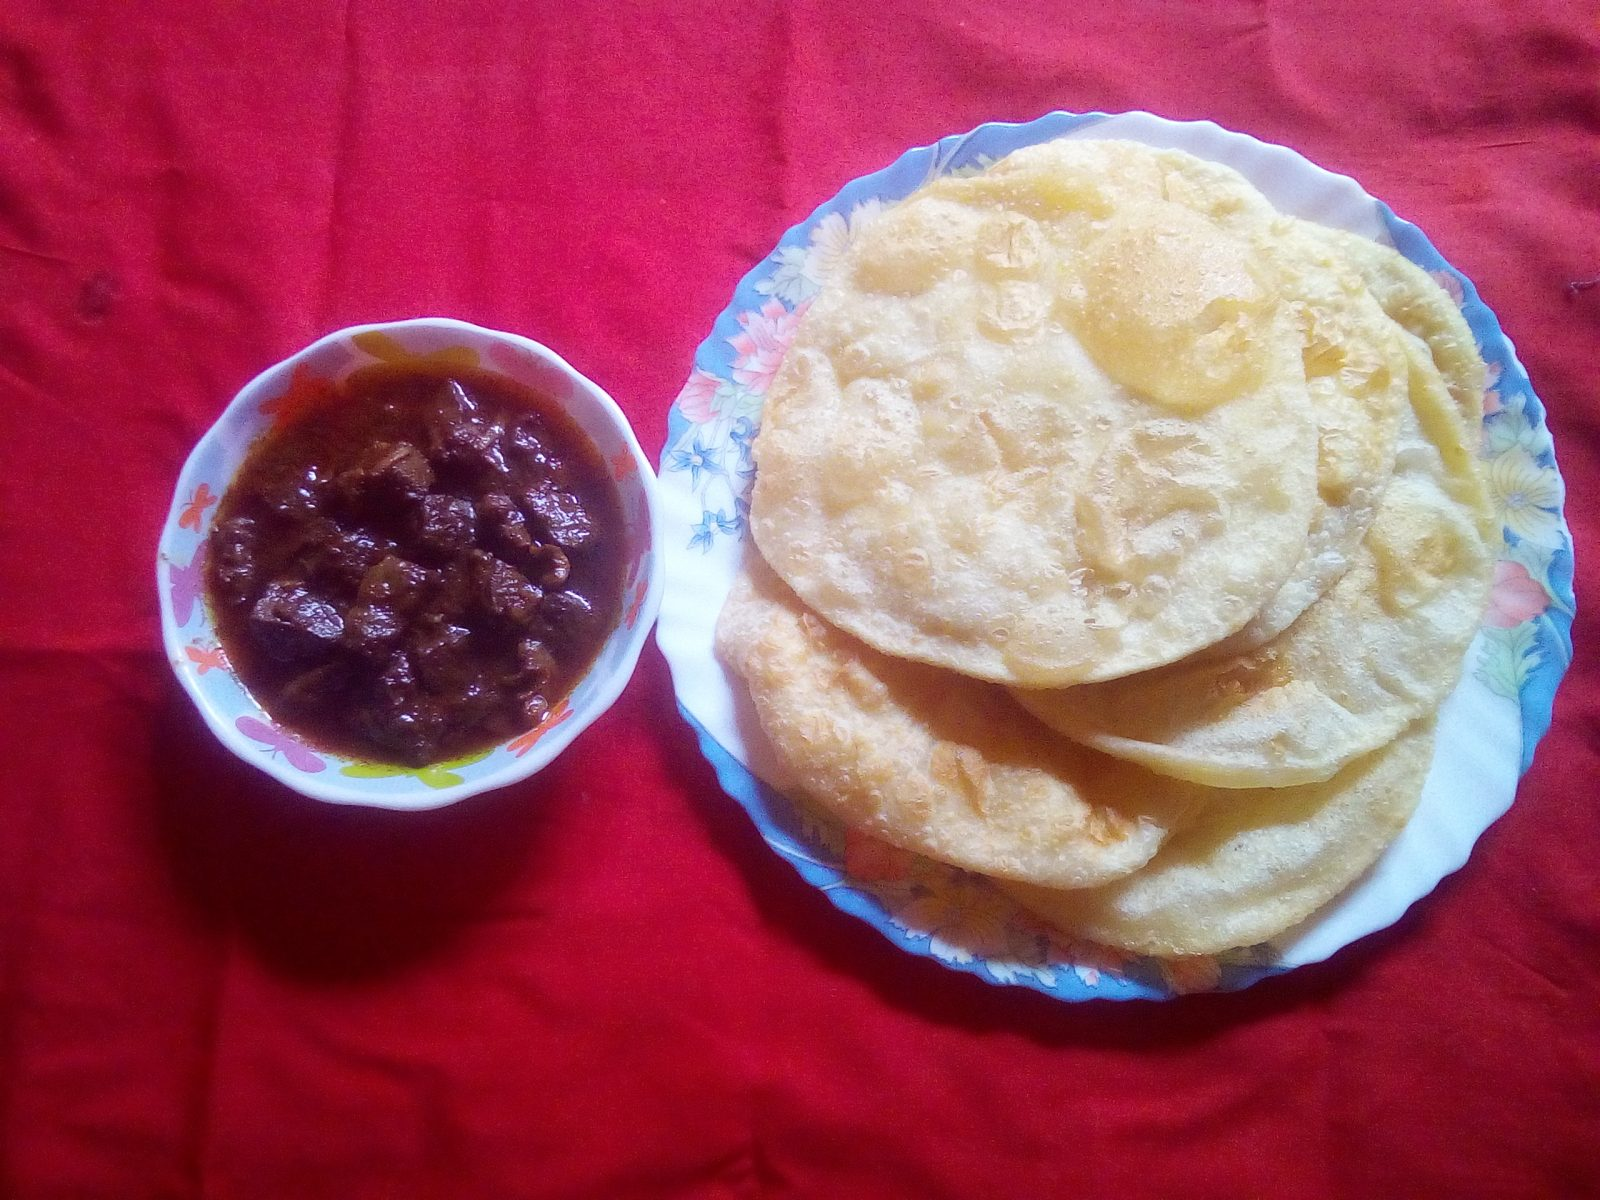 Kolija Vuna with Luchi from Sompurna Rannaghor